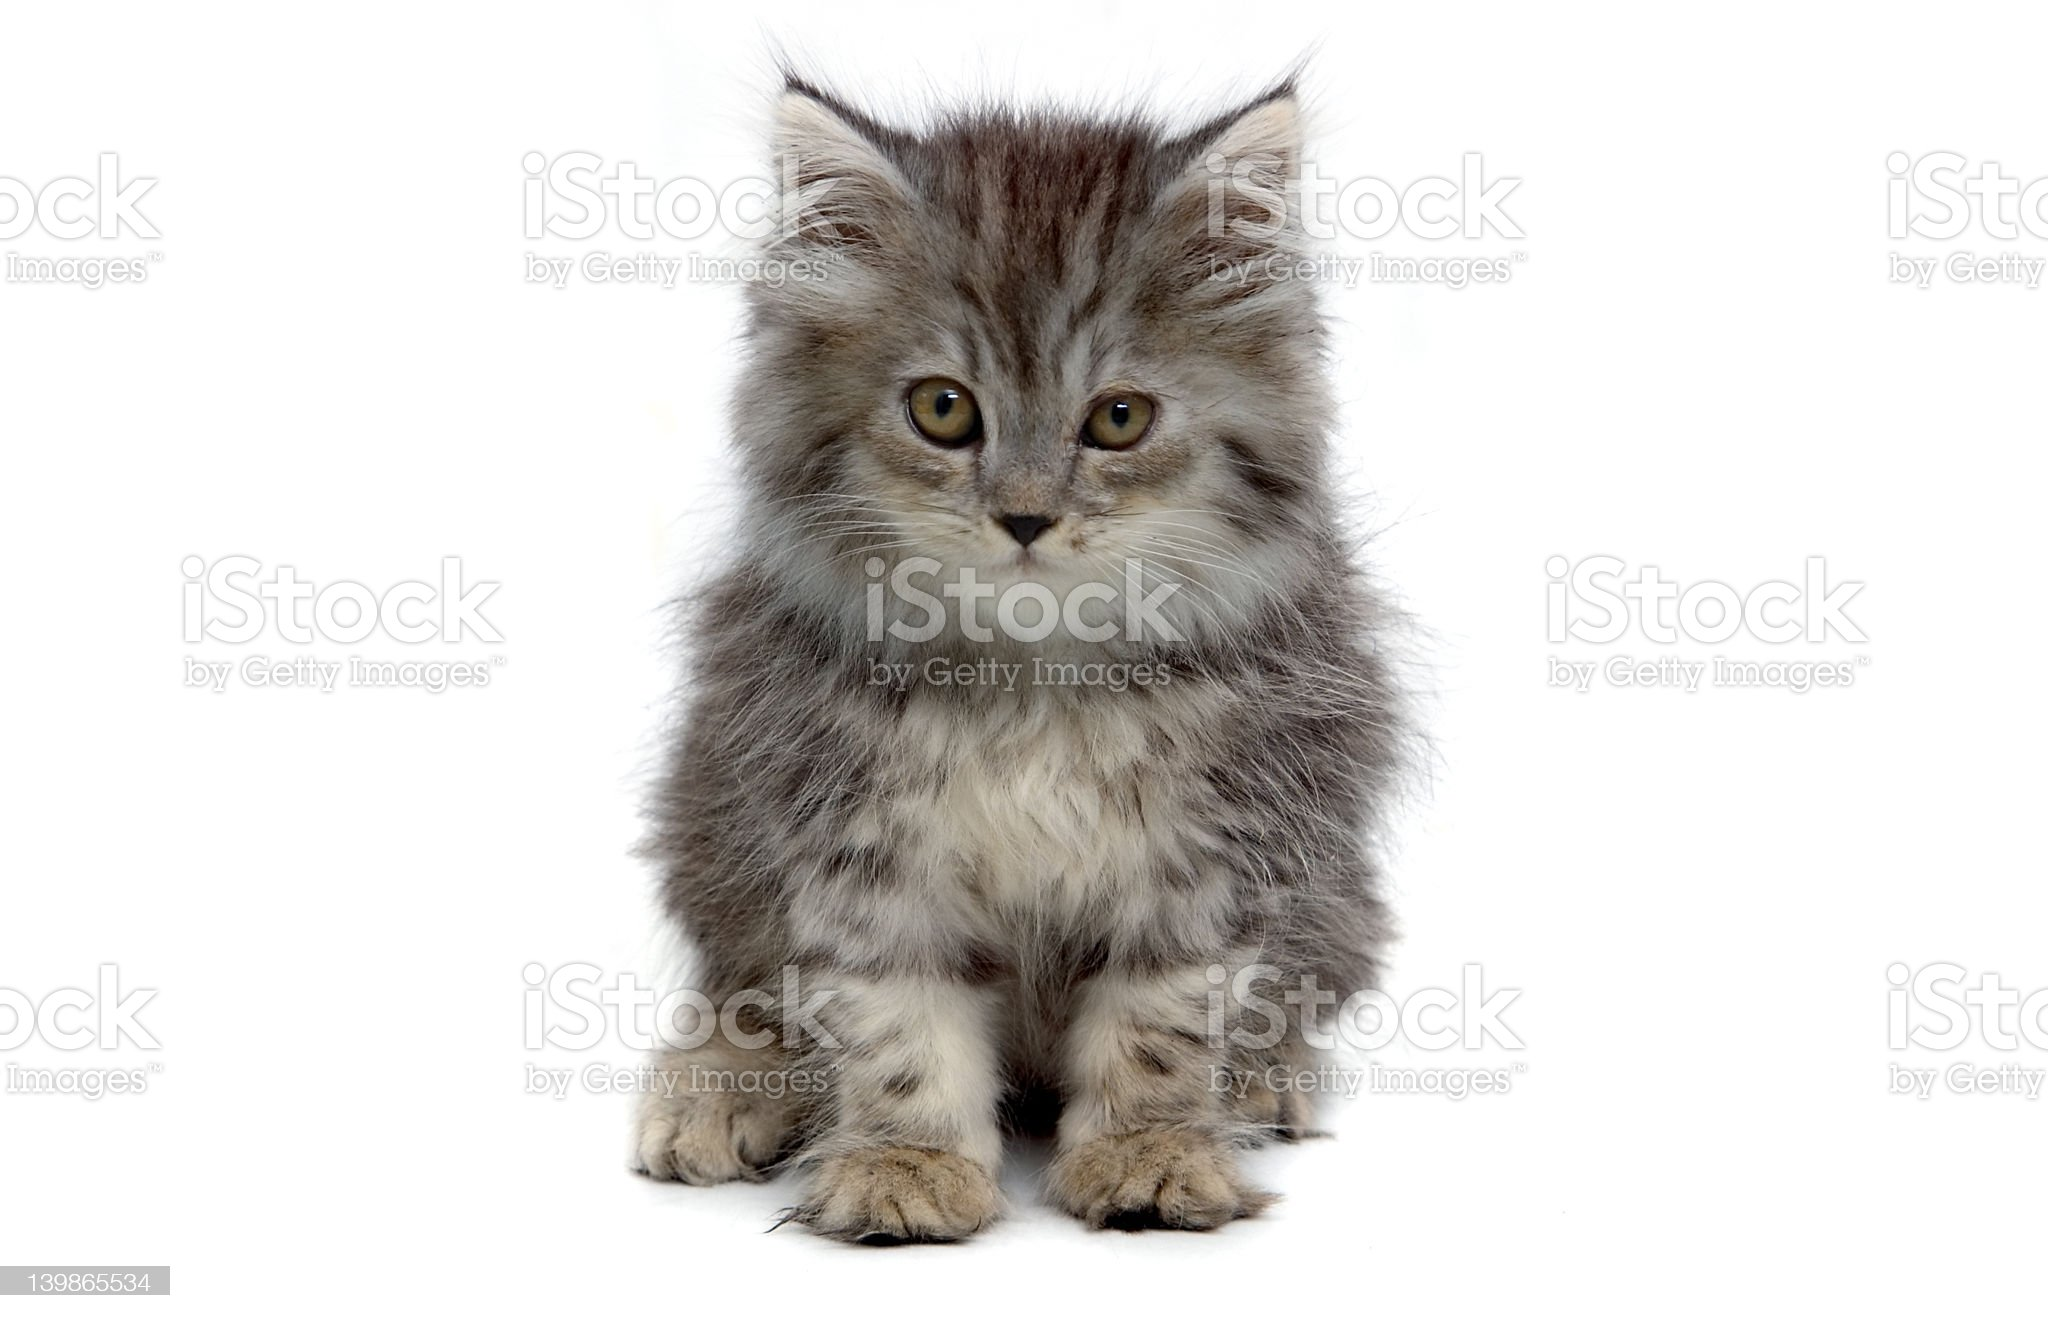 Cute grey kitten royalty-free stock photo